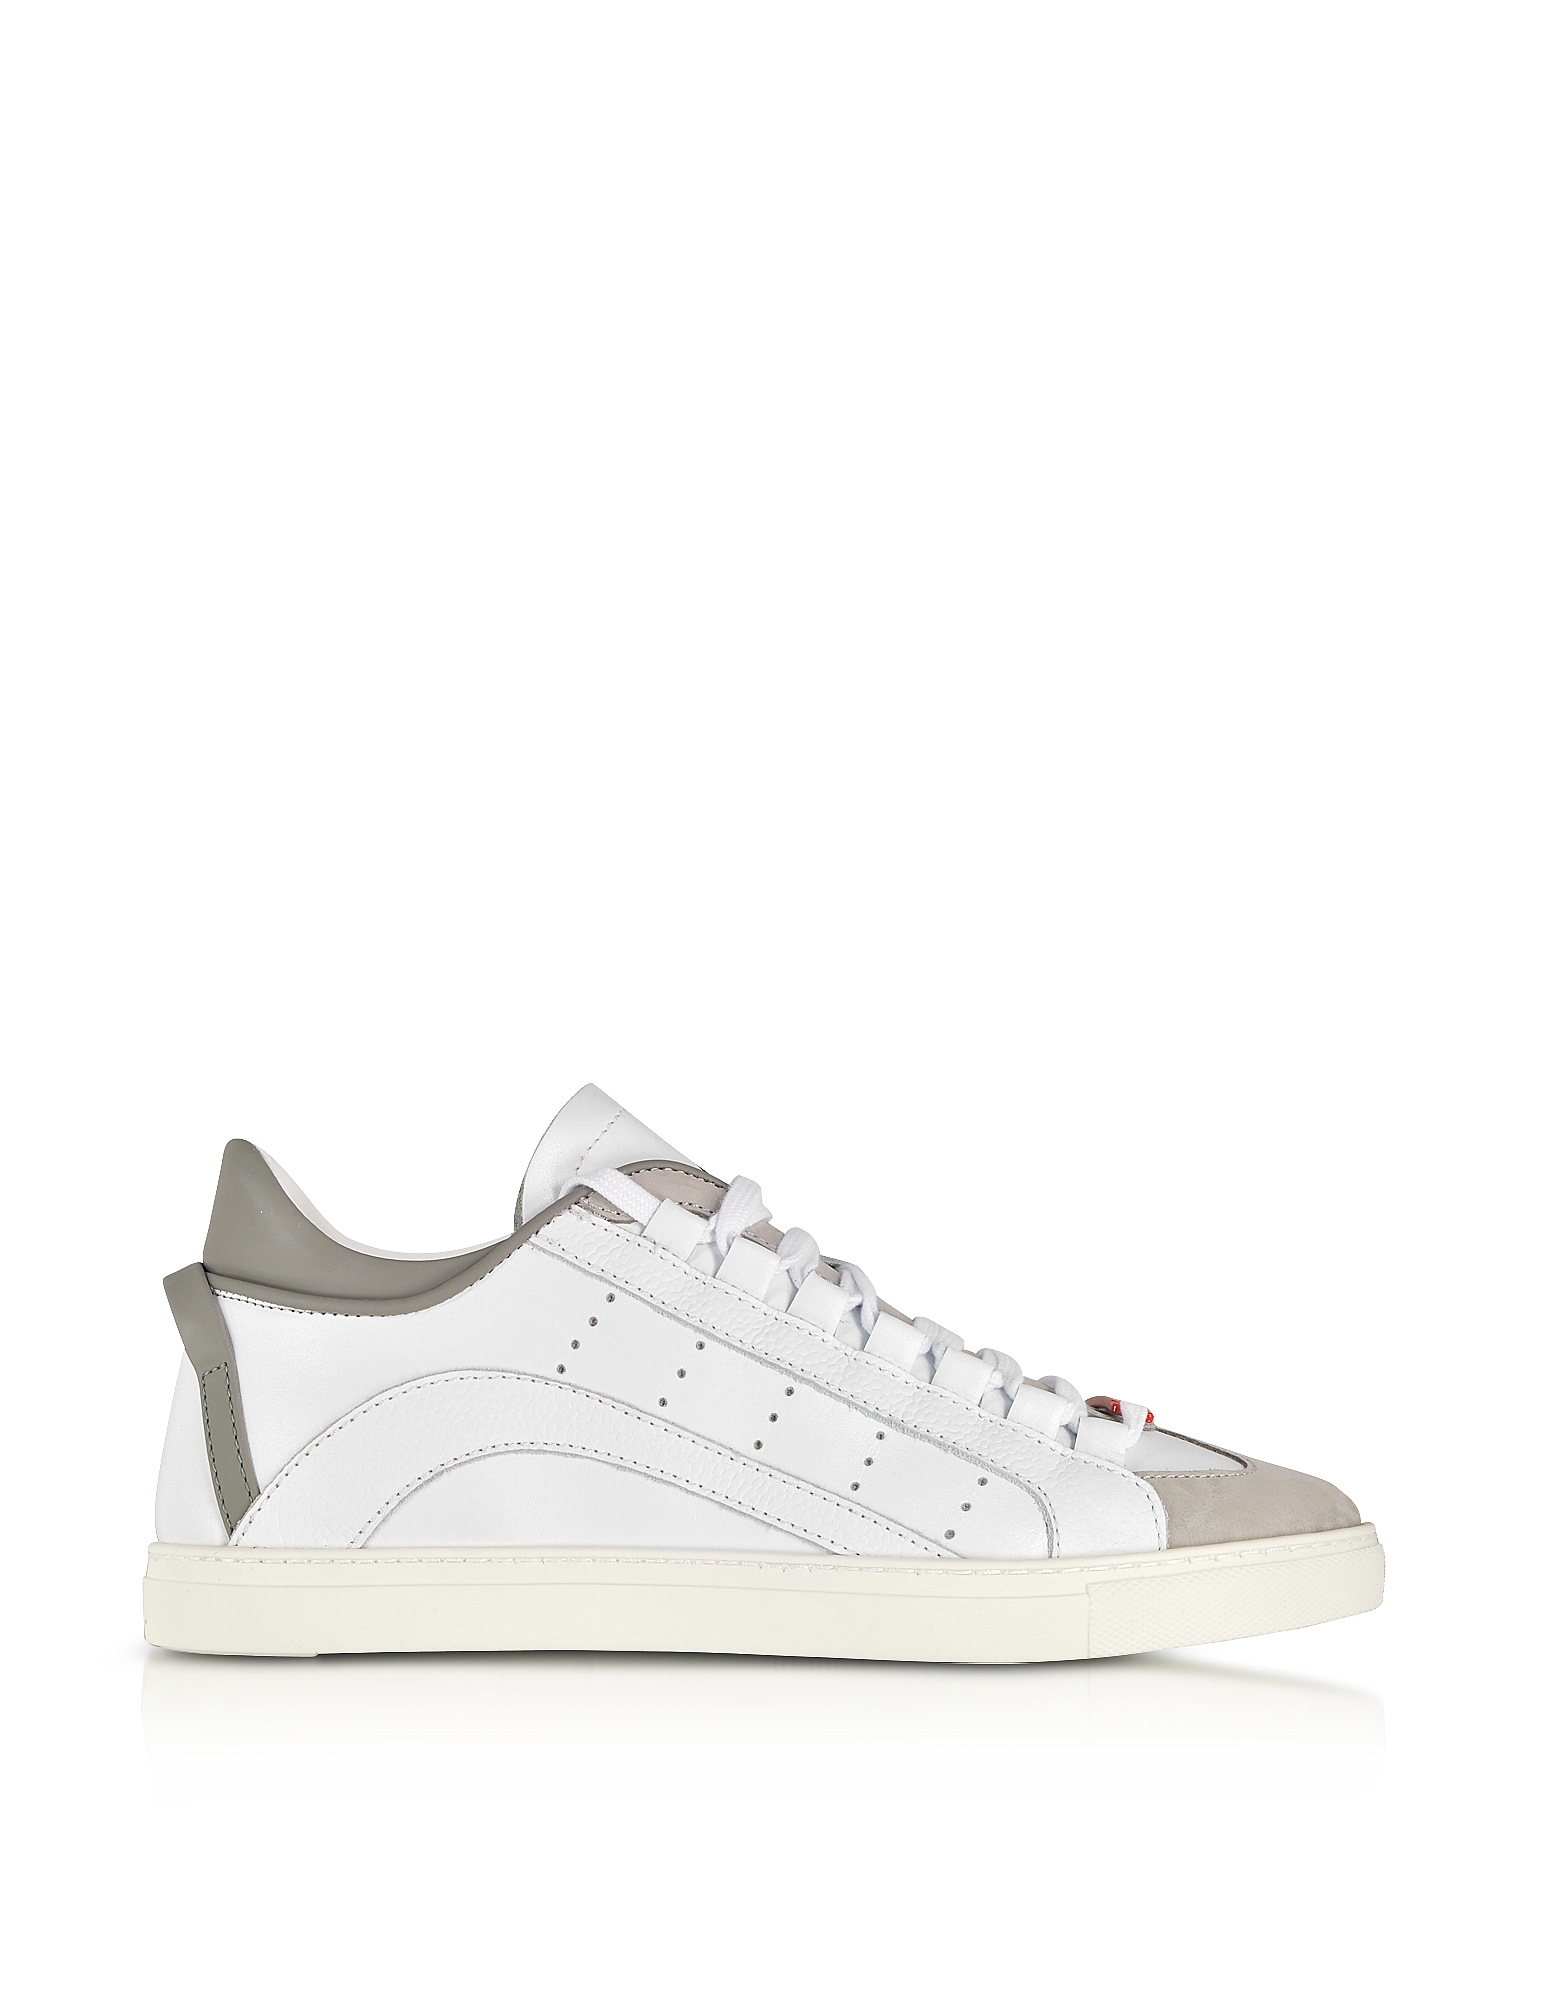 DSquared2 Designer Shoes, White and Gray Leather Low Top Men's Sneakers